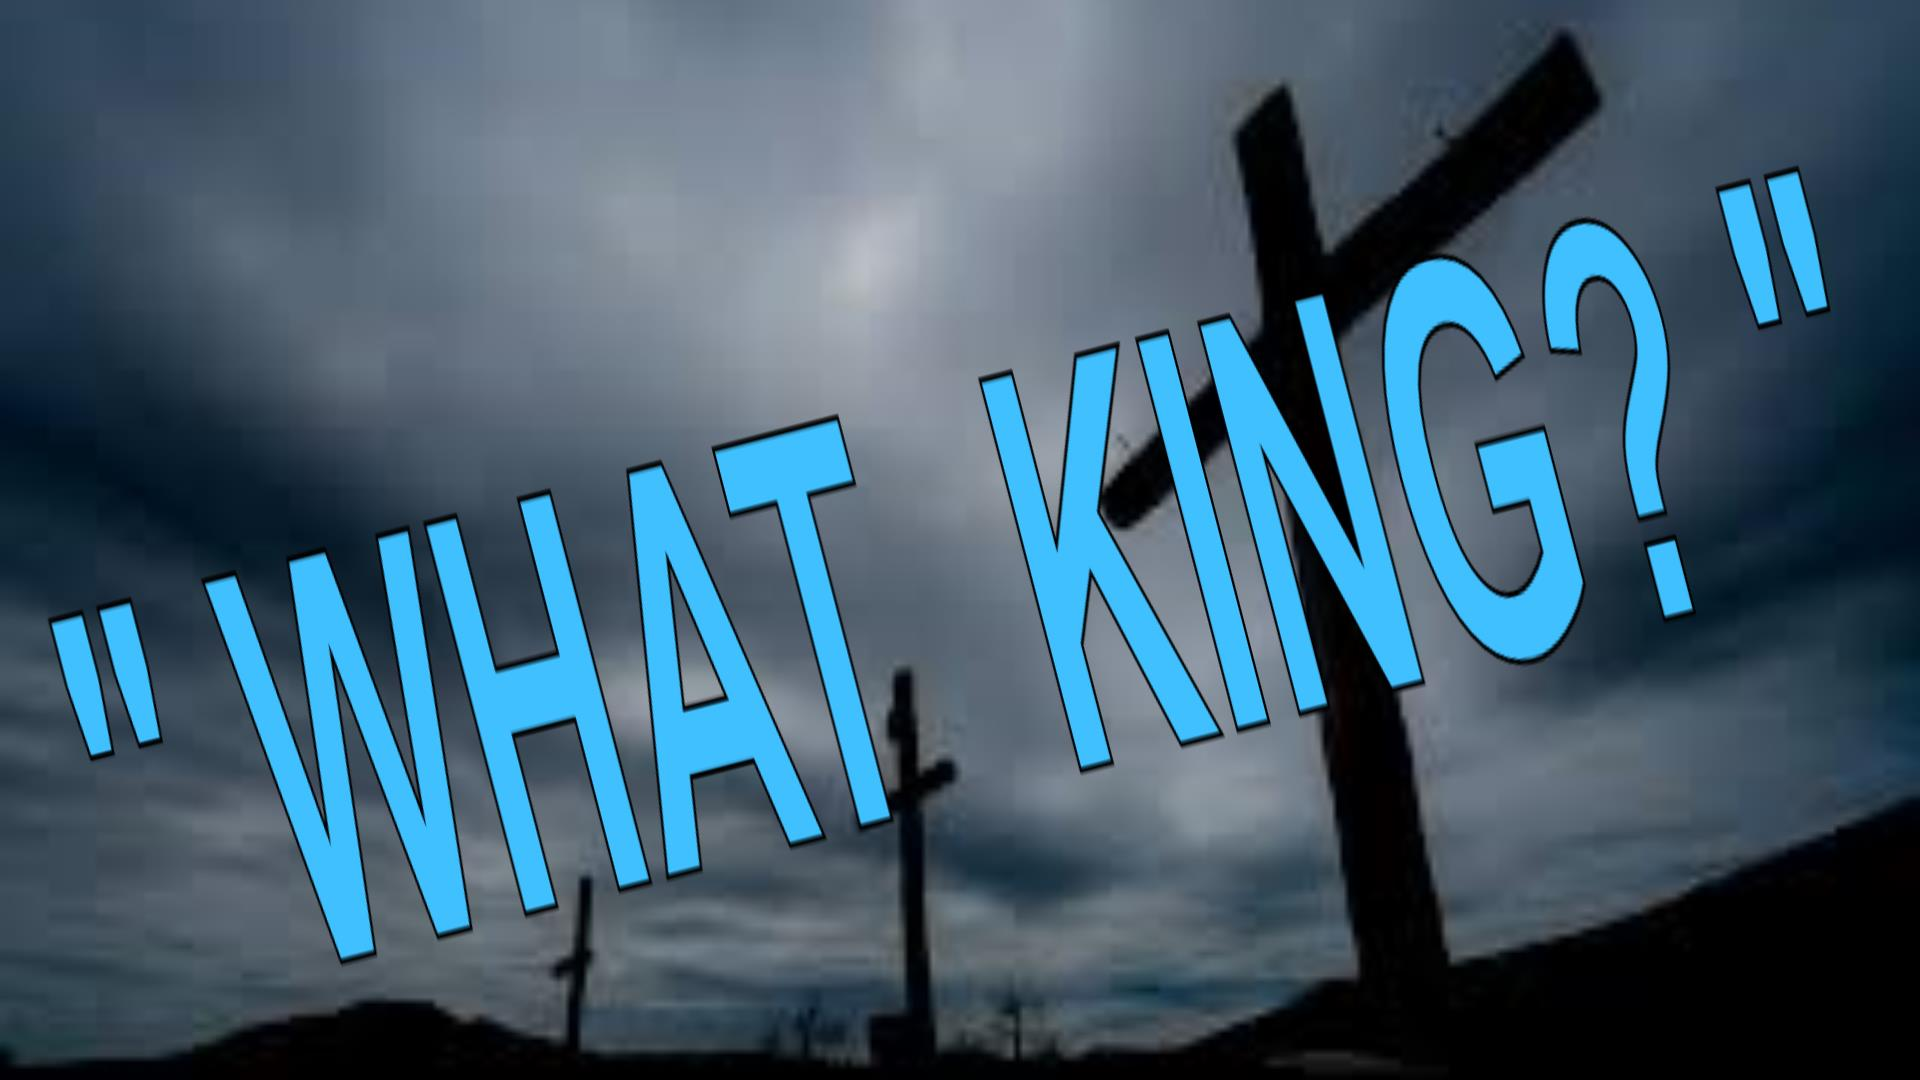 WHAT KING?